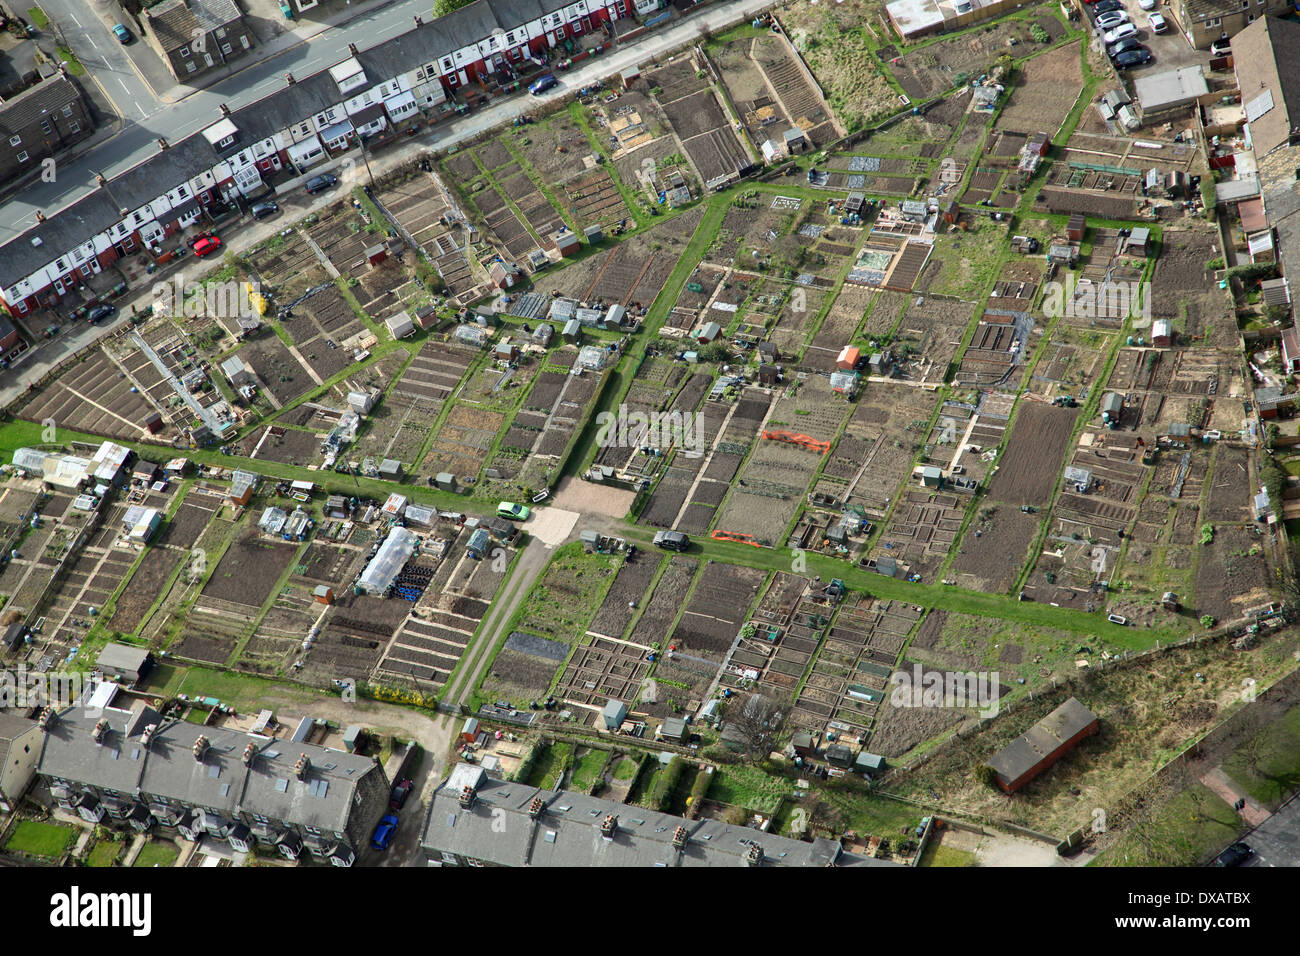 aerial view of some gardening allotments - Stock Image